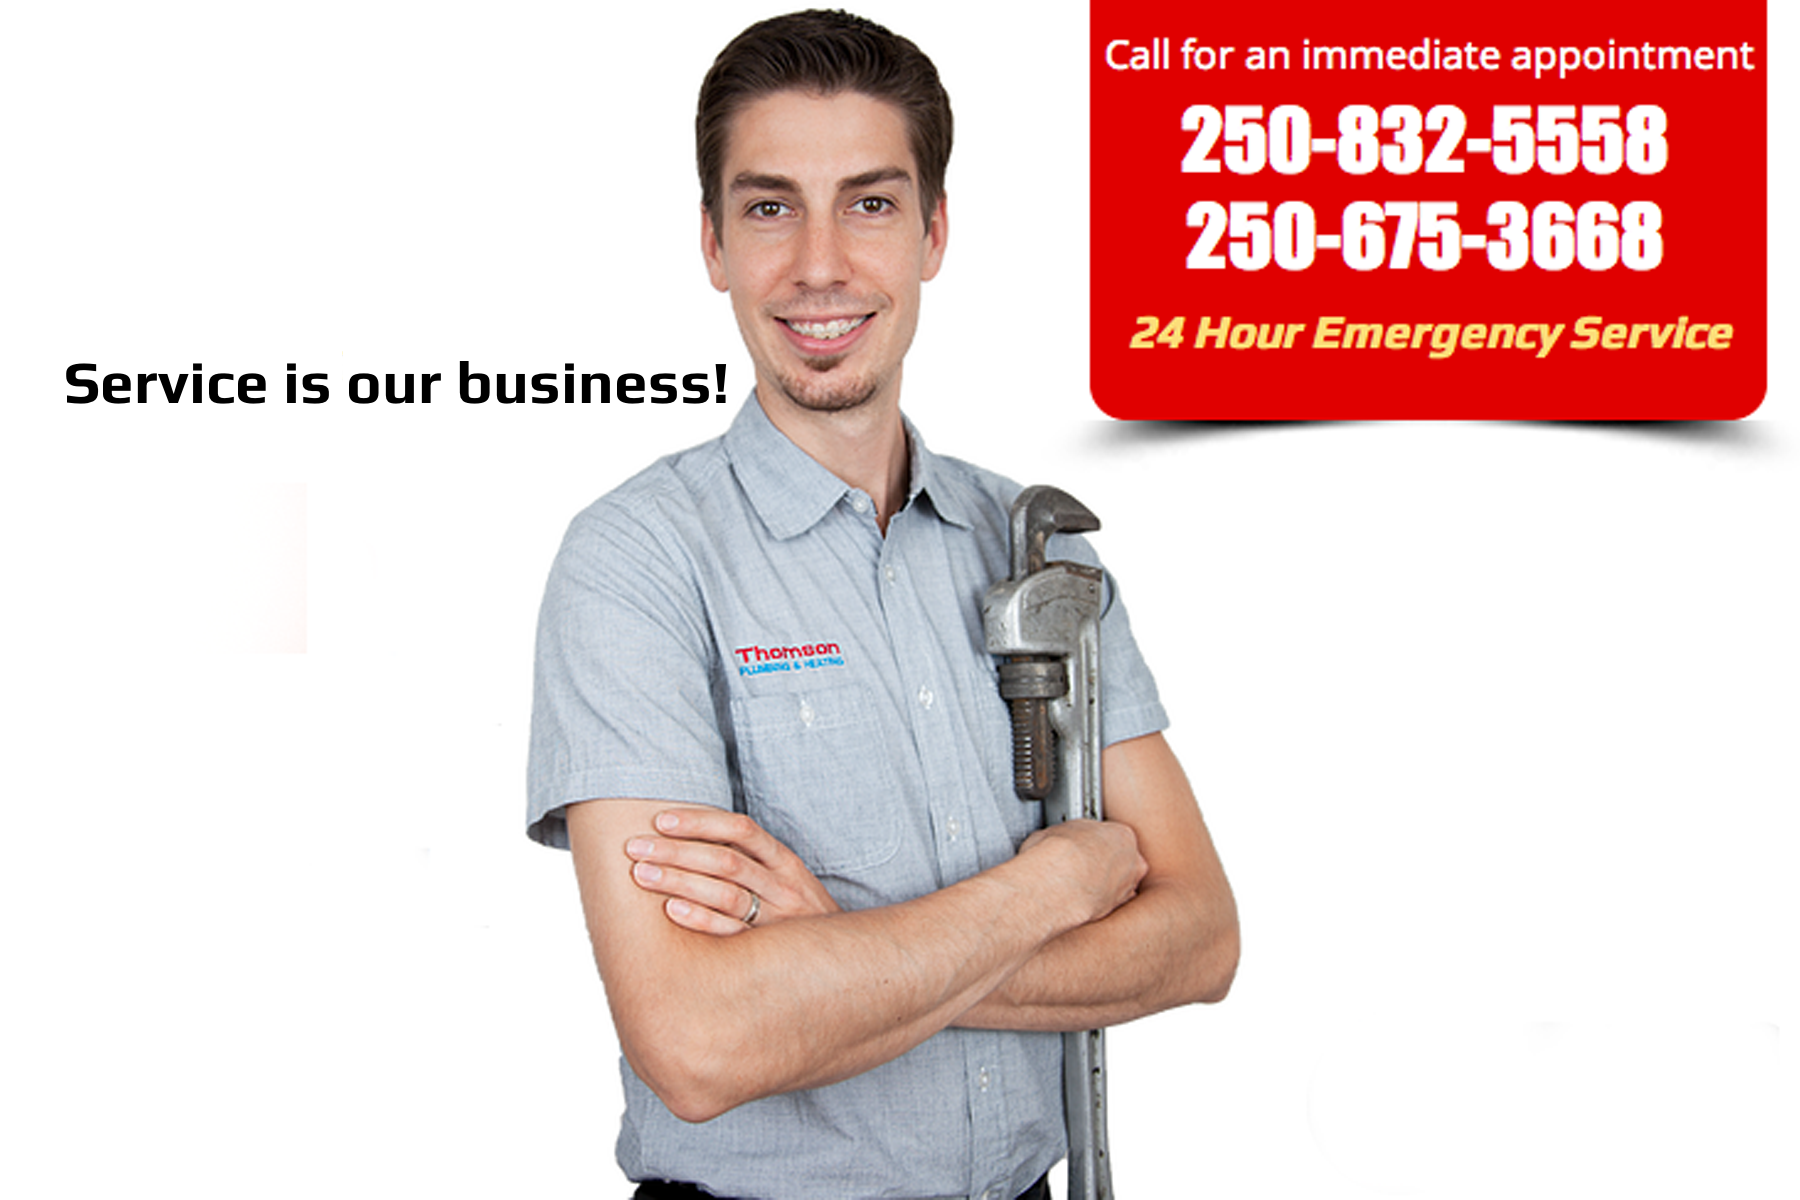 Thomson Plumbing & Heating - Plumbers & Plumbing Contractors - 250-832-5558